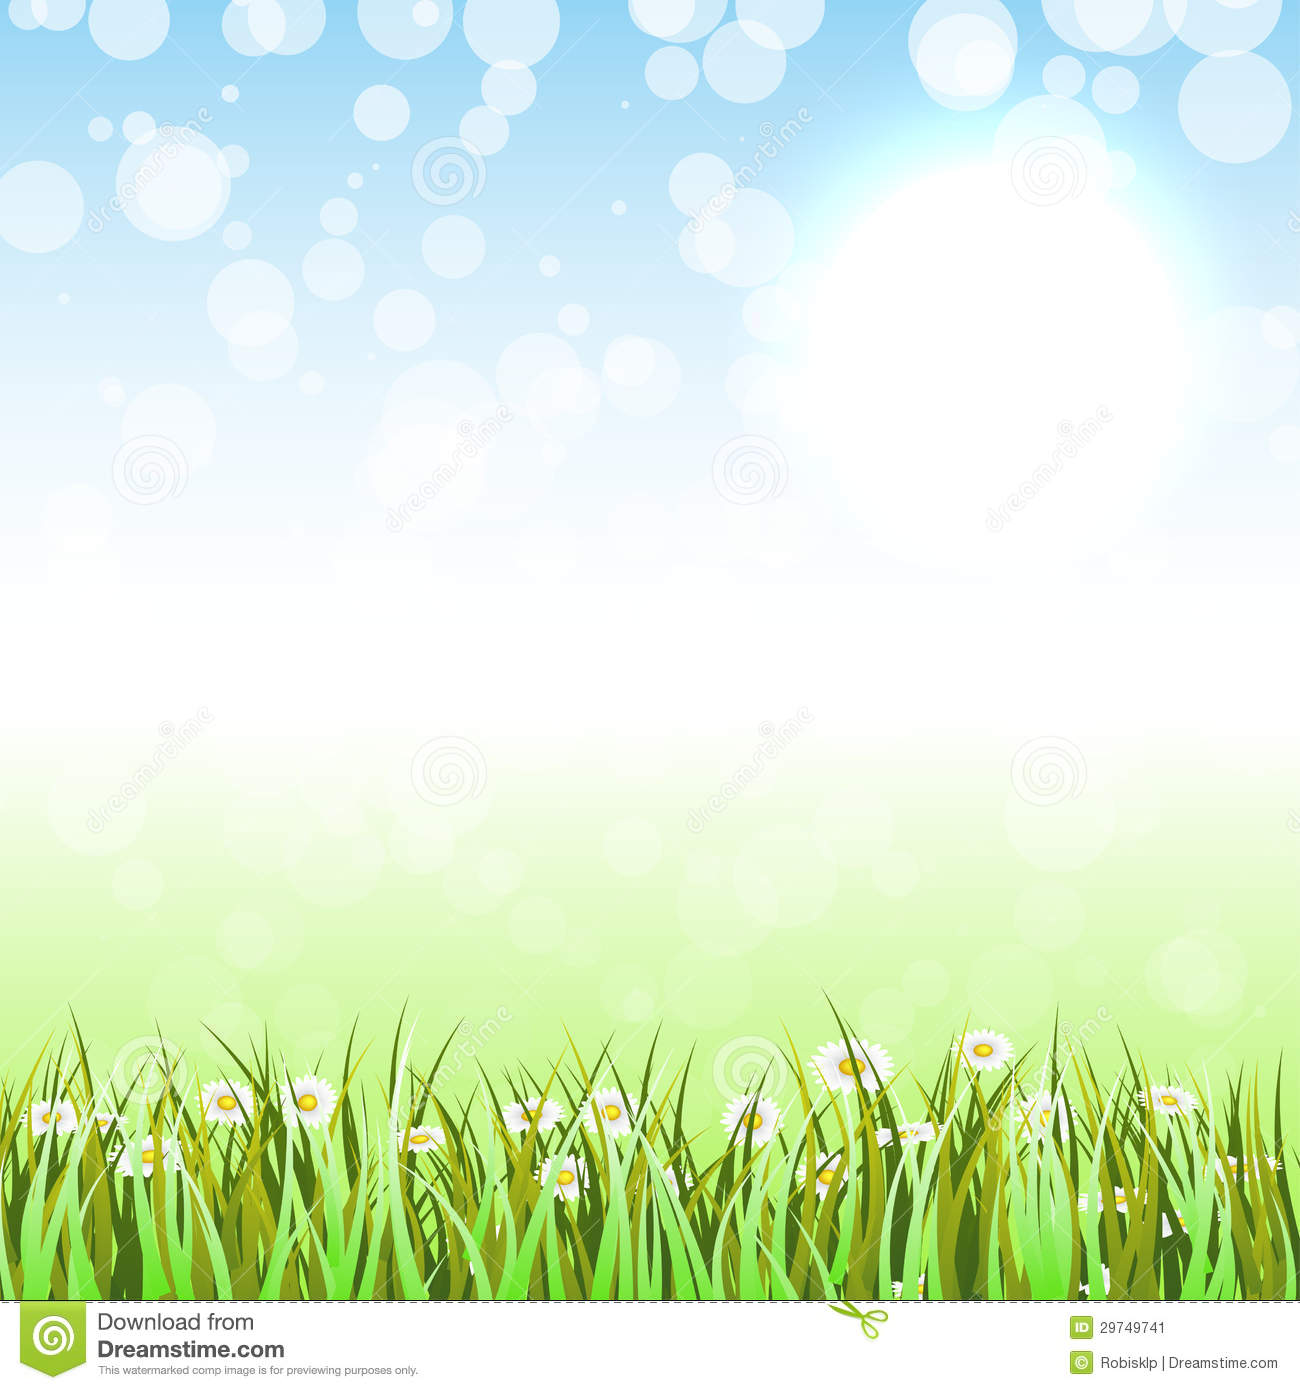 Background clipart spring.